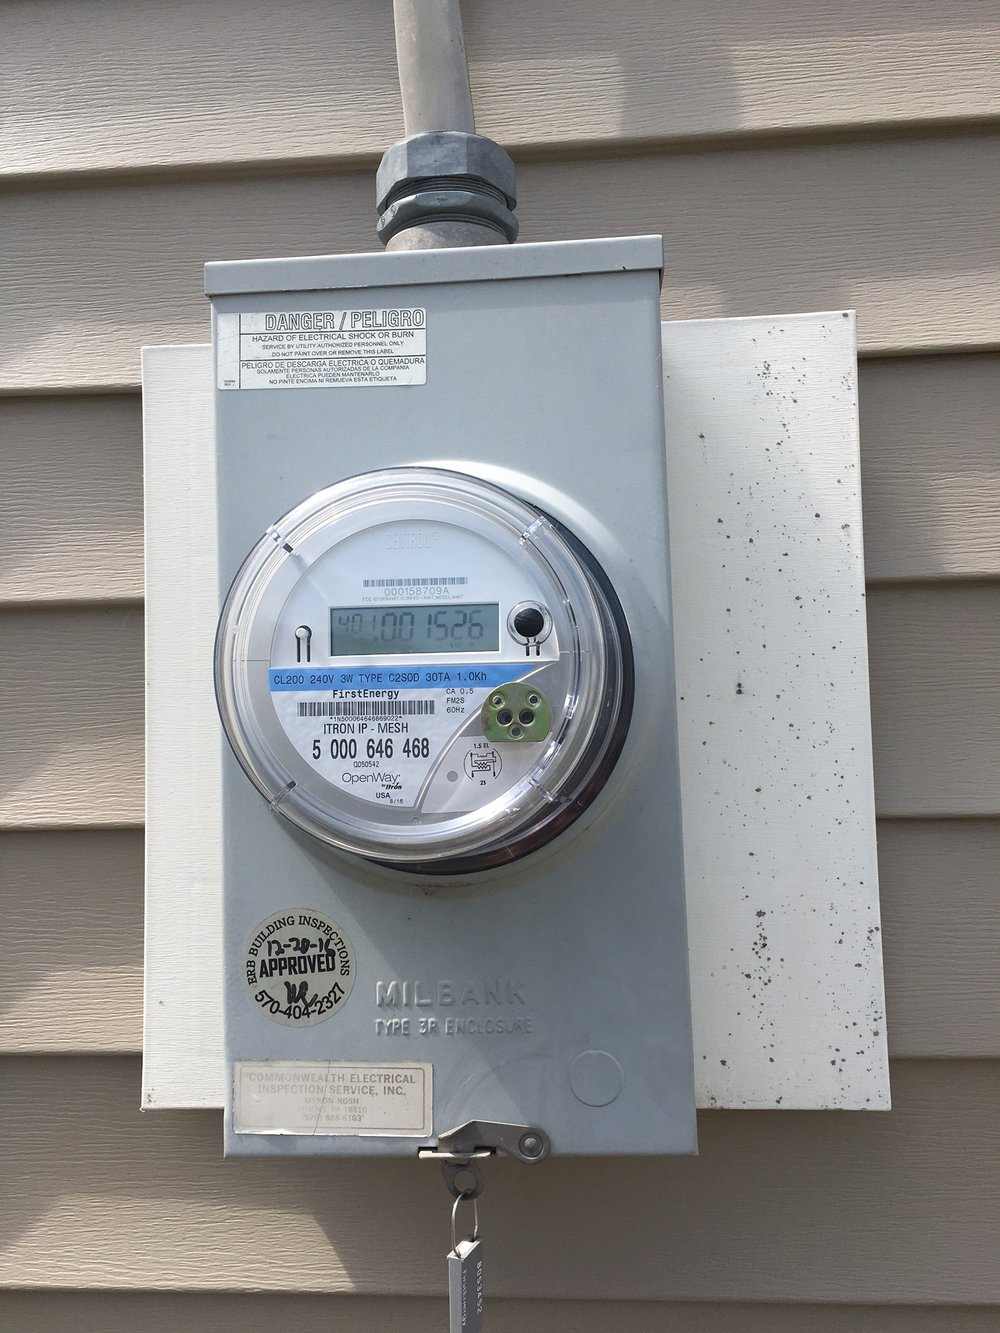 Here's a photo of a smart meter.